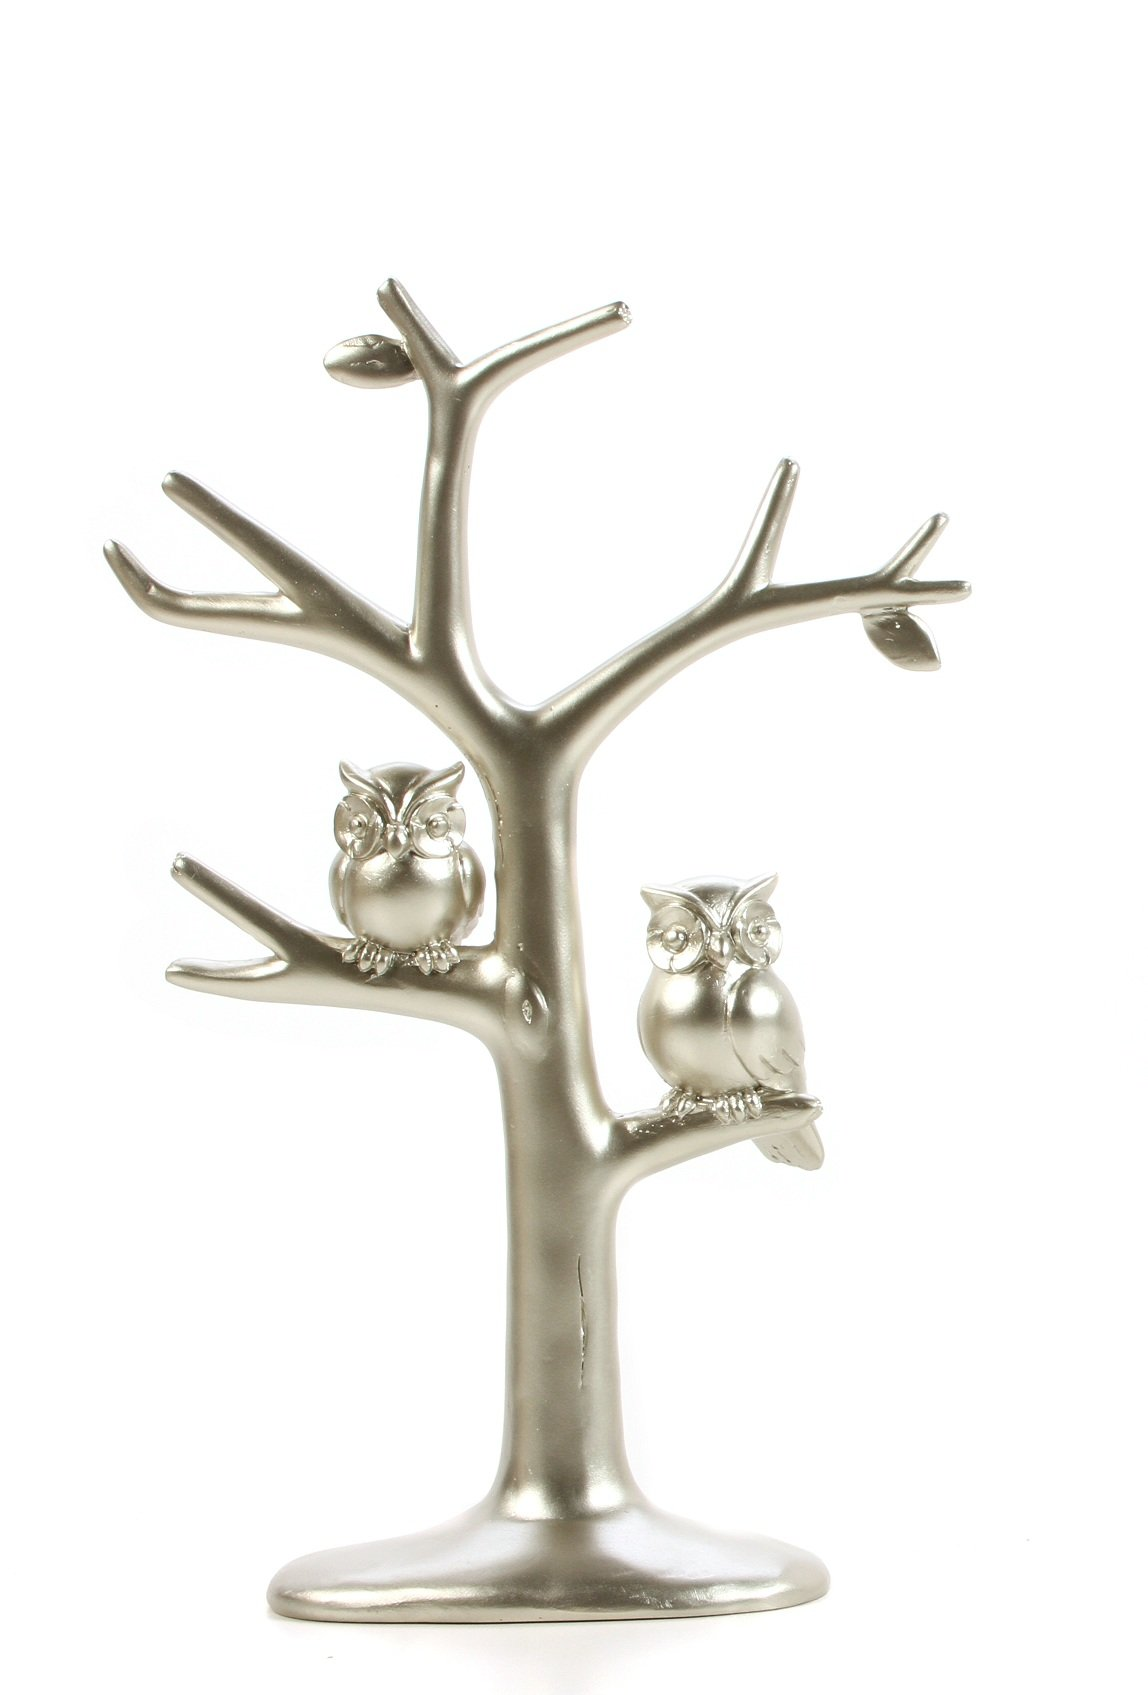 Hosley Decorative Metallic Owls Tree Jewelry Stand, 11.4'' H. Ideal Gift for Wedding, Home, Bathroom O9